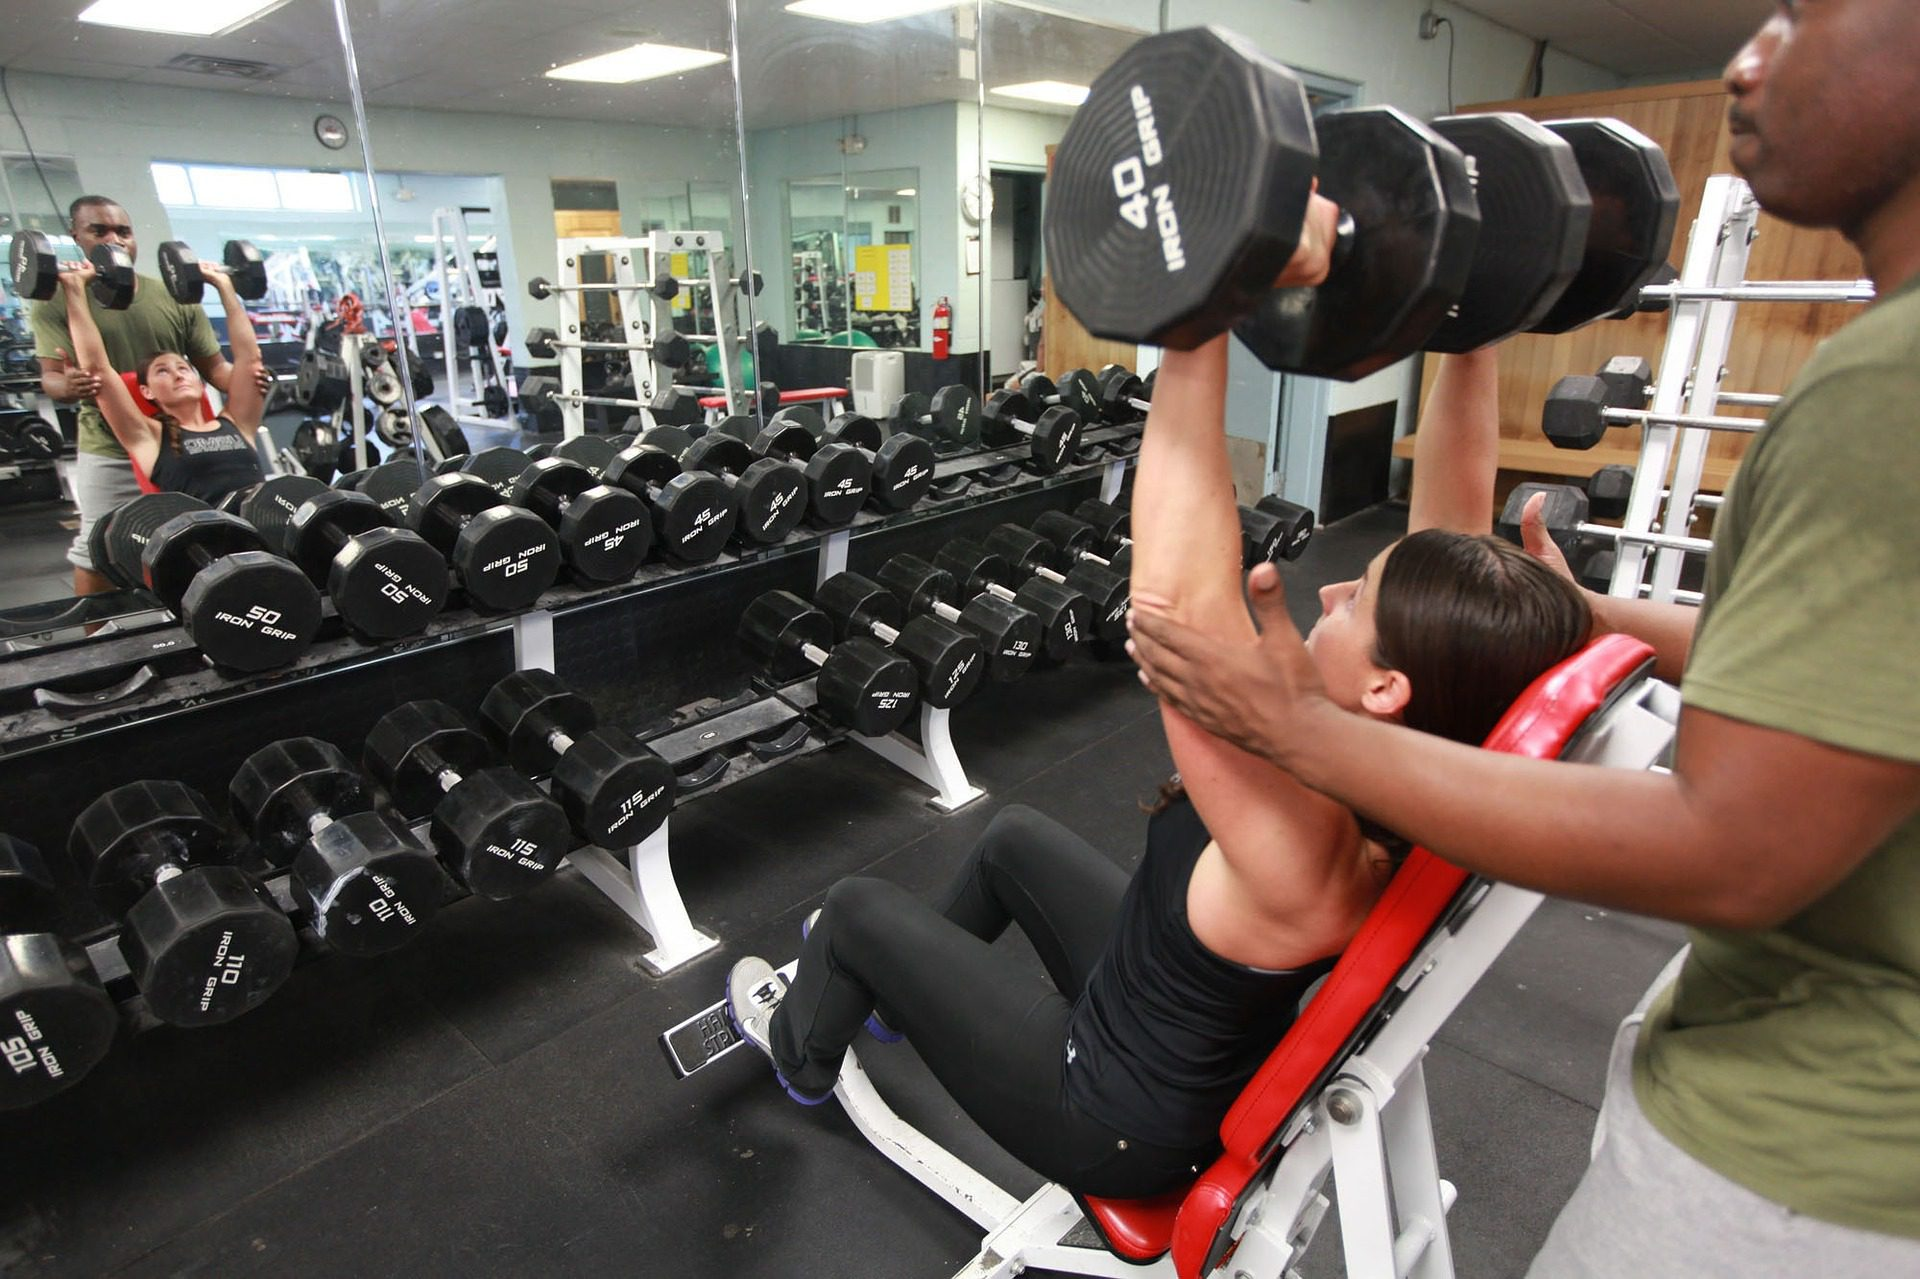 A woman lifting a heavy weight is being assisted by the trainer.